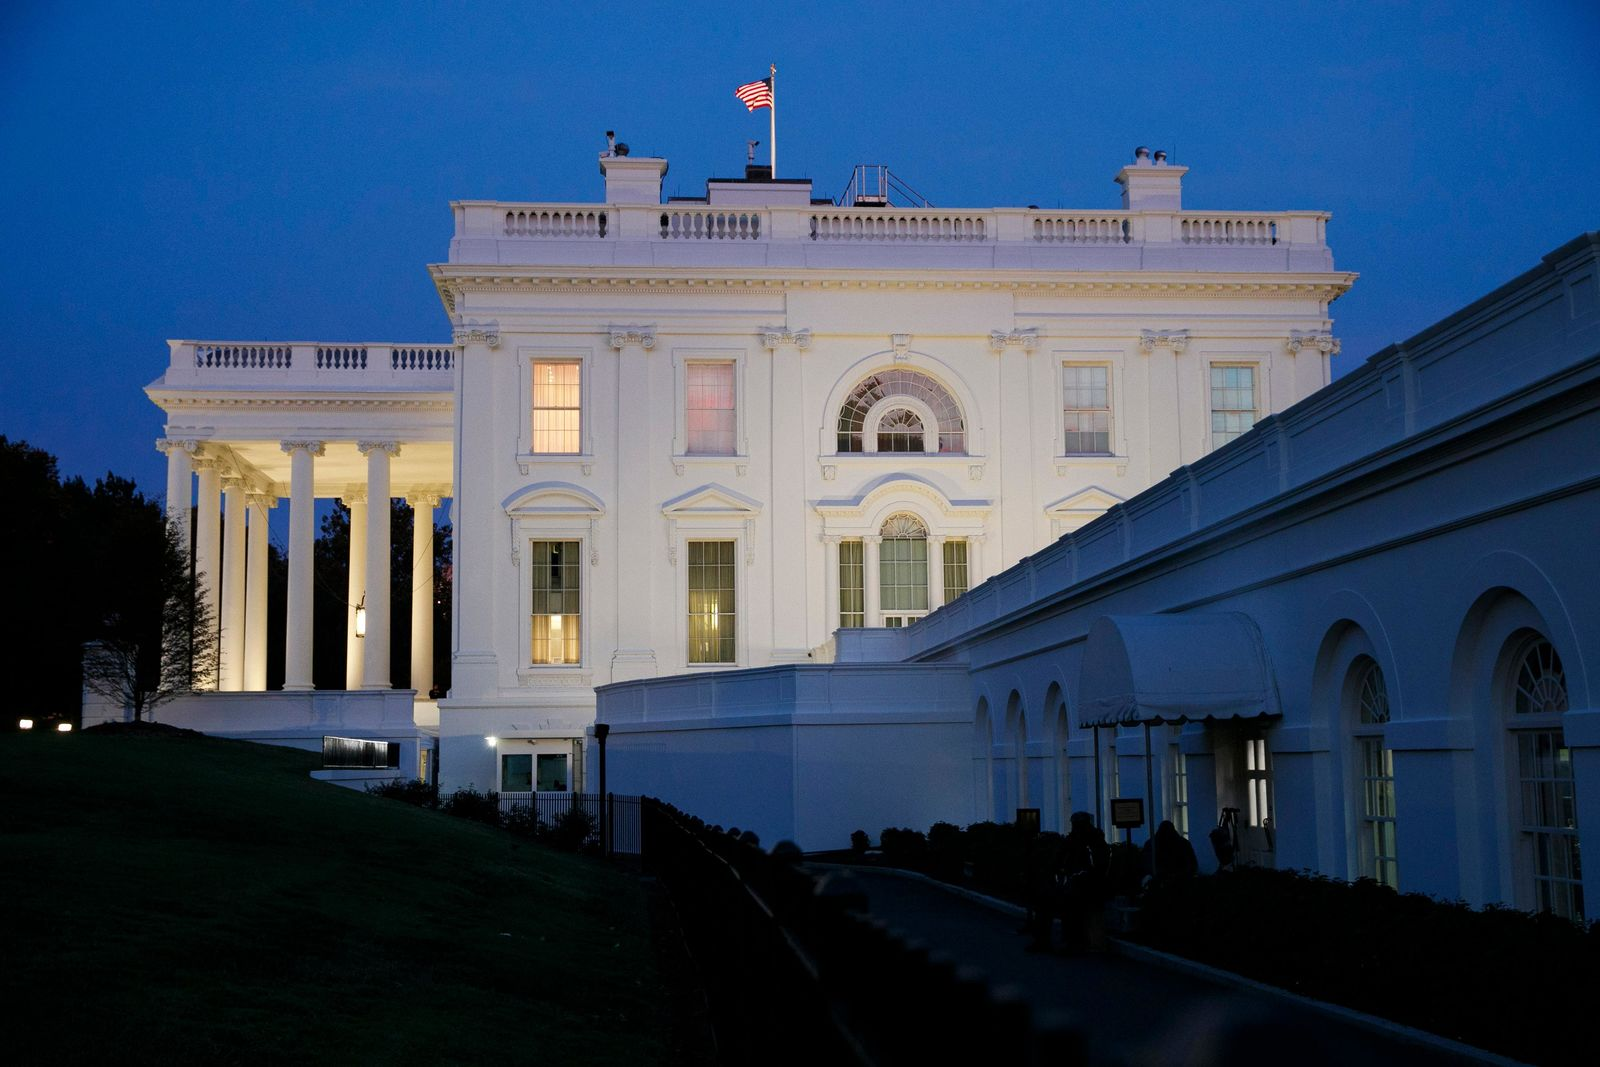 The White House is seen at dusk as members of the media wait for comment from Charlotte Charles and Tim Dunn, the parents of Harry Dunn, Tuesday, Oct. 15, 2019, at the White House in Washington. AP Photo/Jacquelyn Martin)